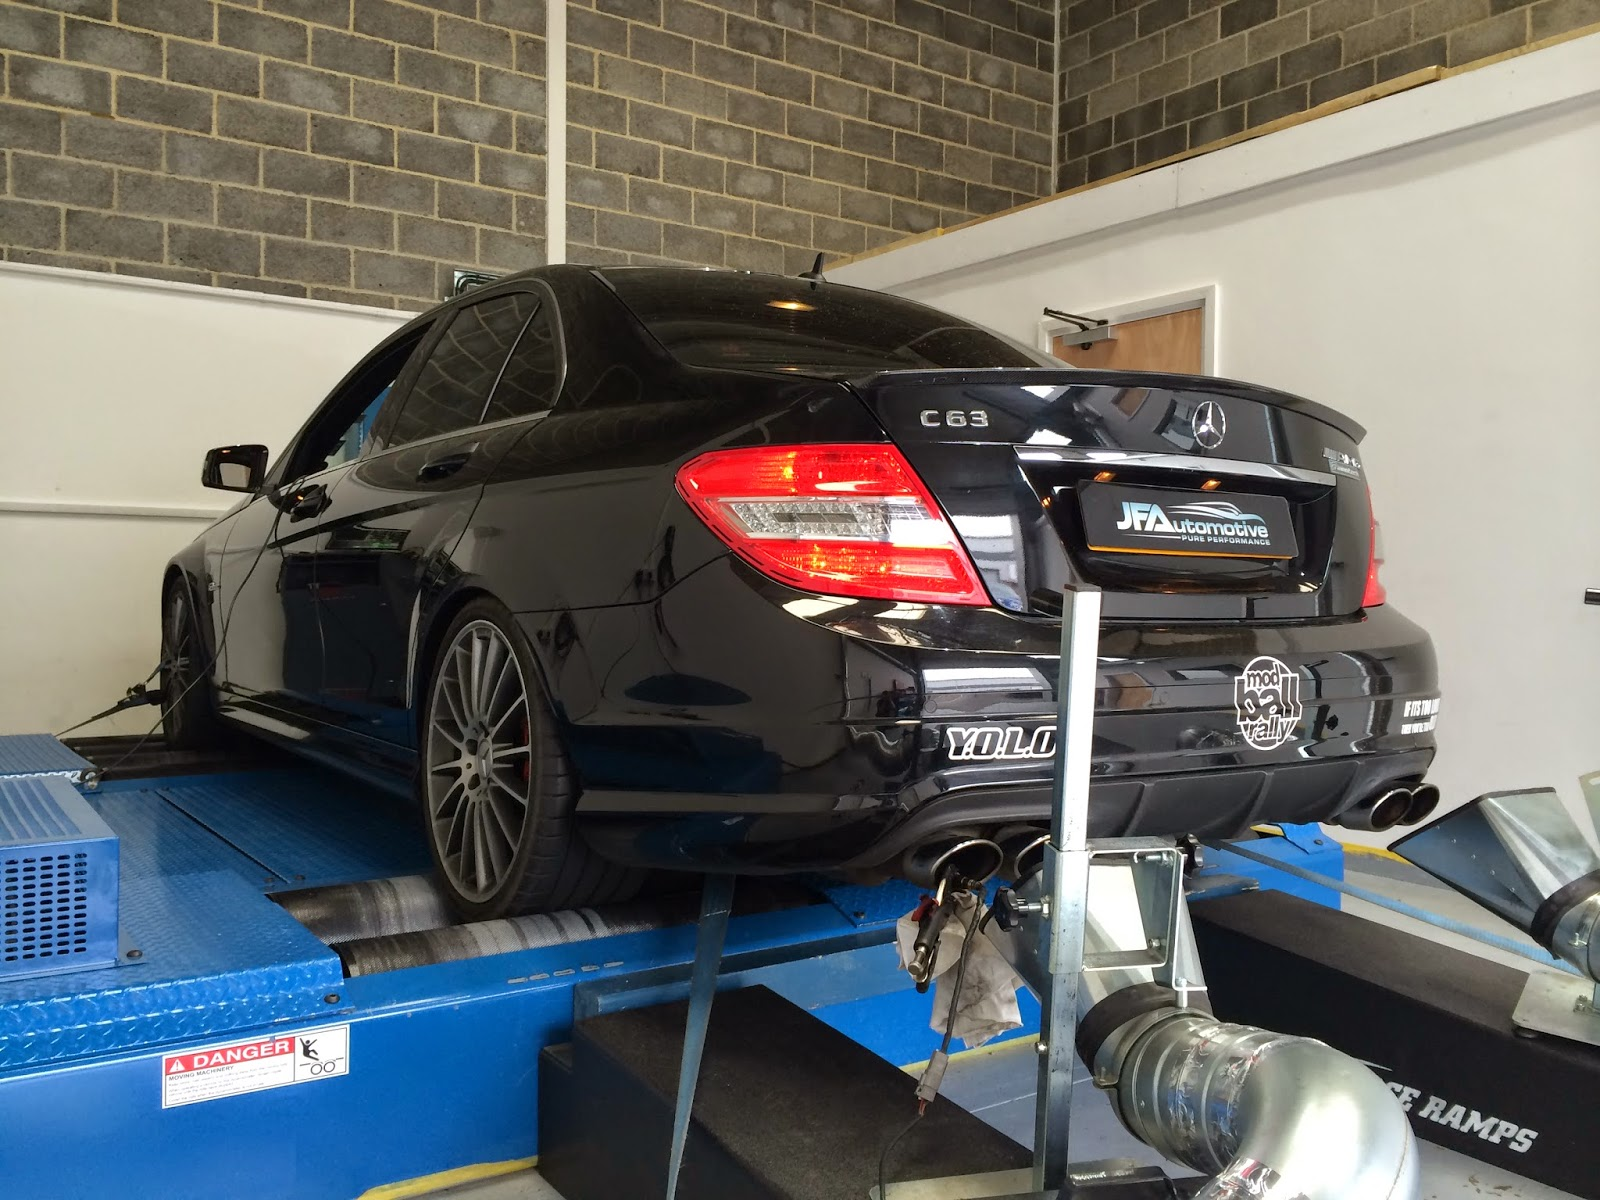 Mercedes C63 AMG Engine & Gearbox Tuning at JF Automotive | JF